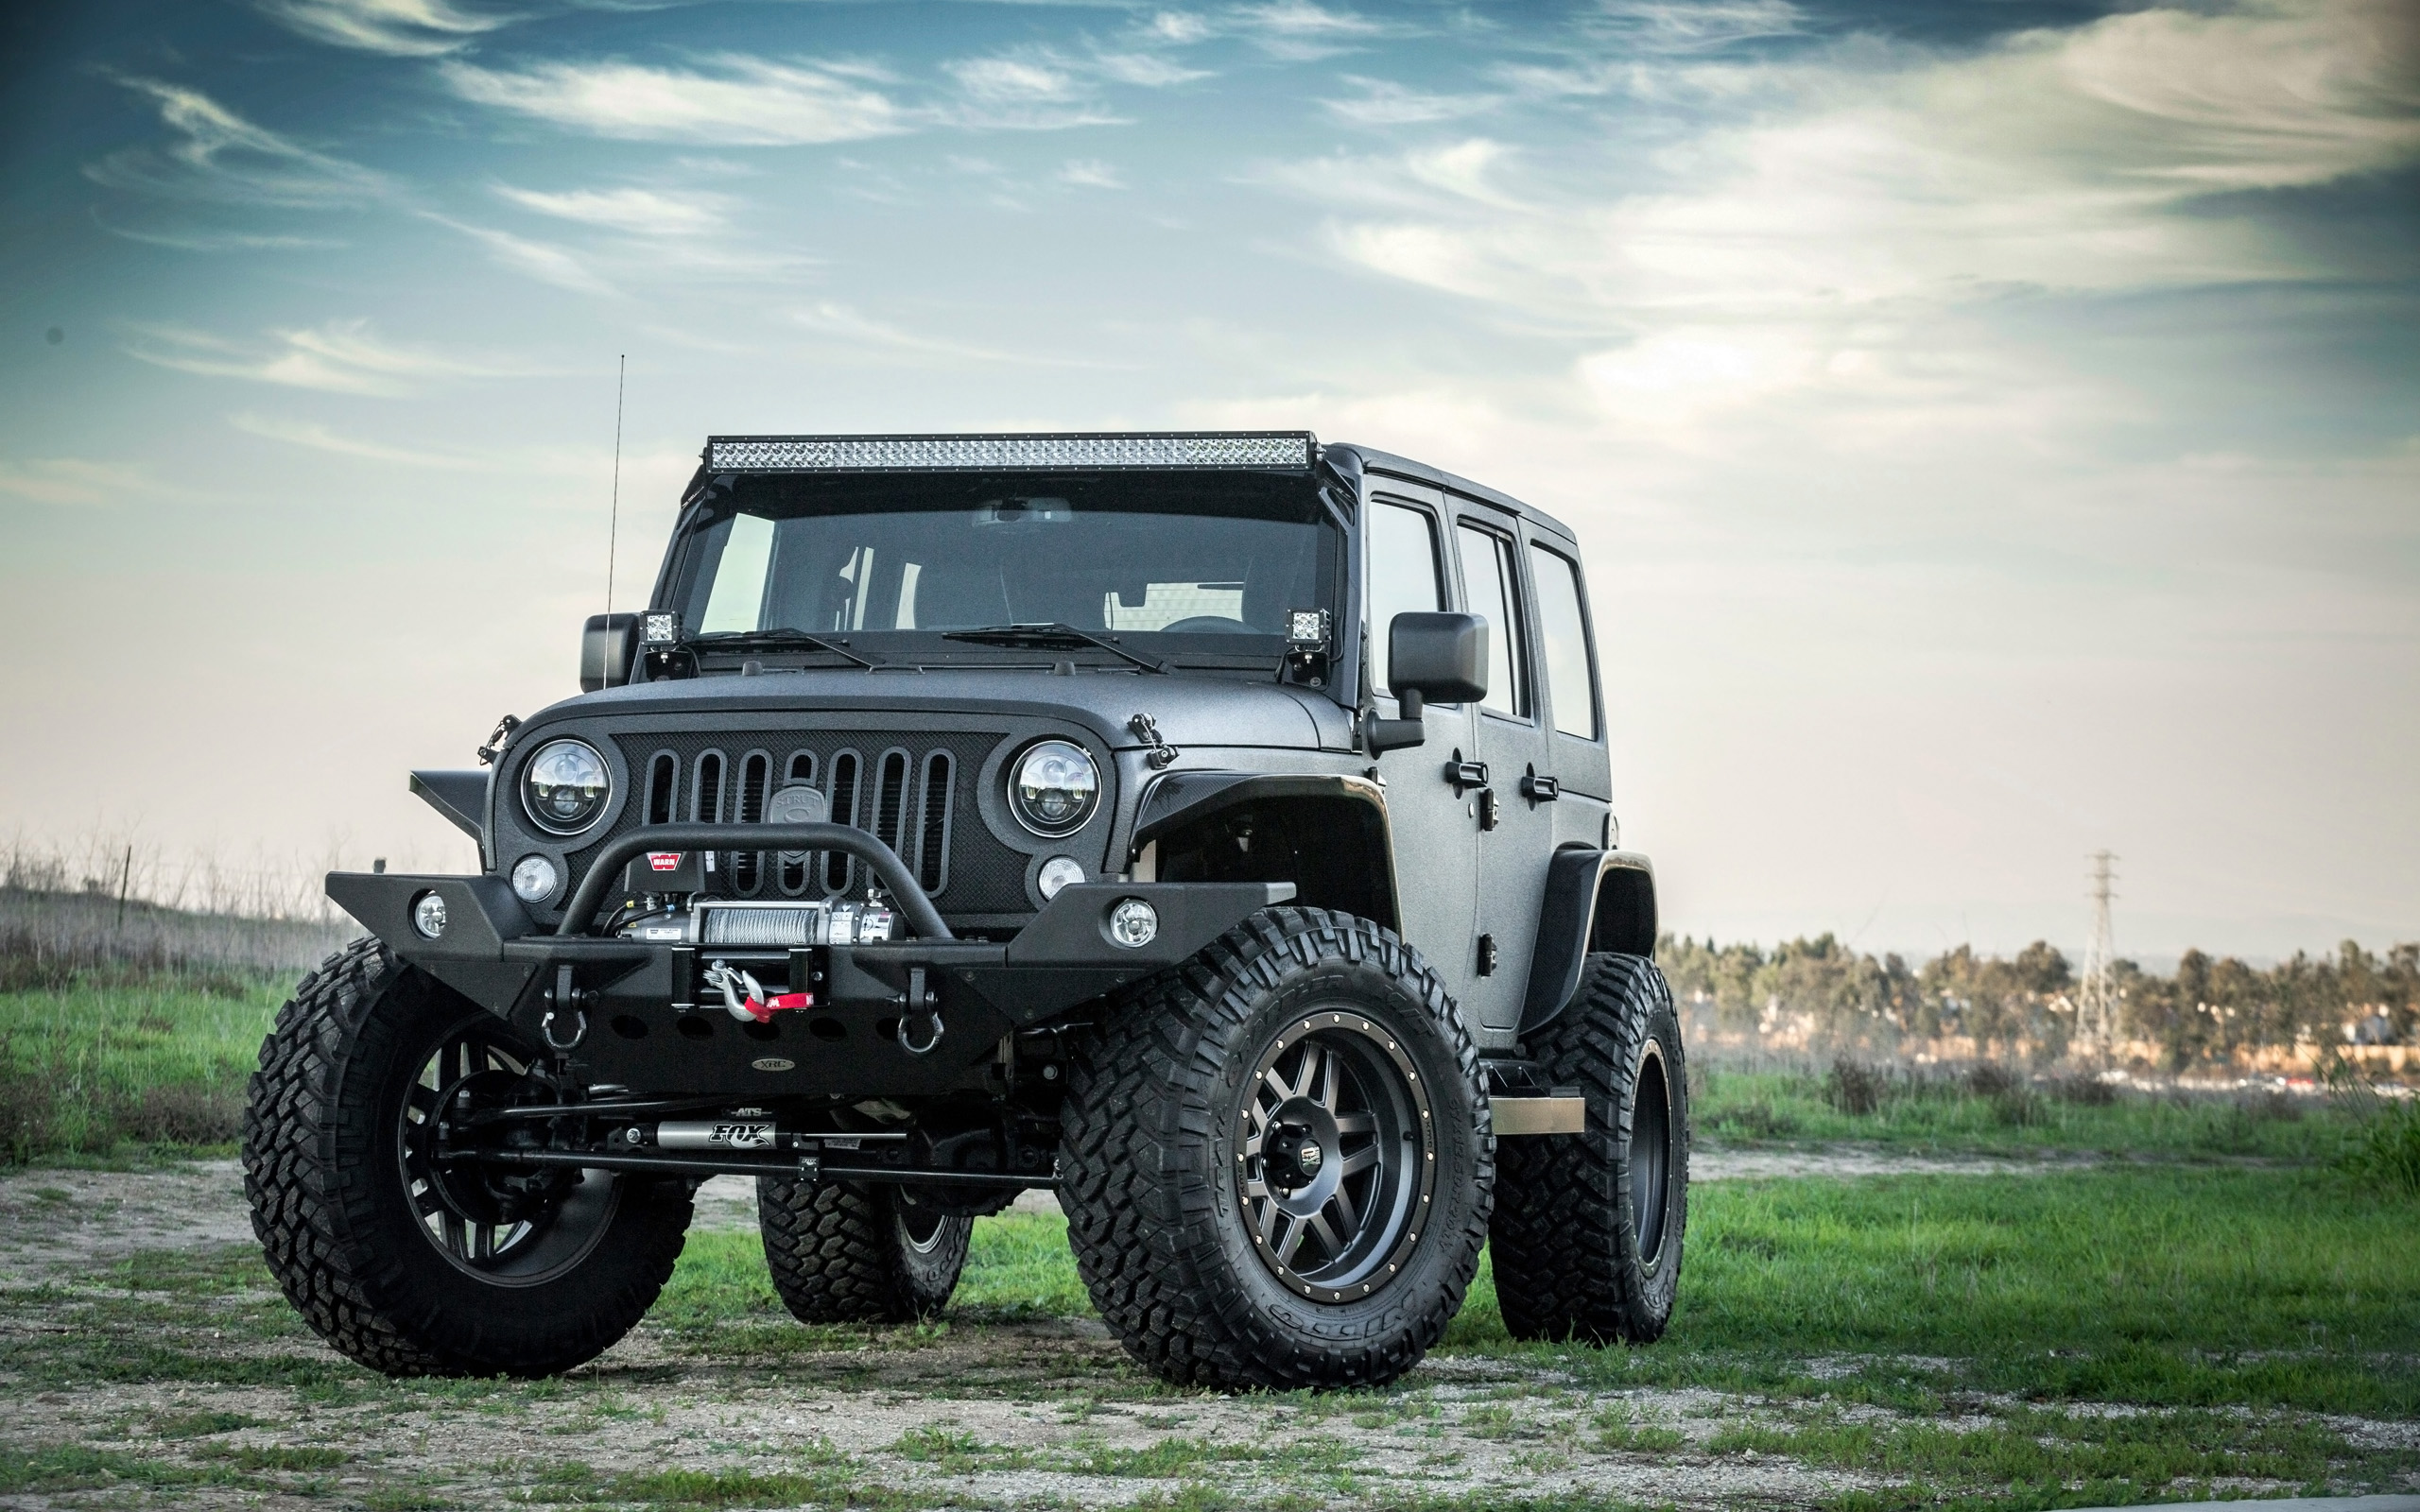 Green Jeep Wrangler >> Jeep Wrangler Wallpapers Desktop - WallpaperSafari